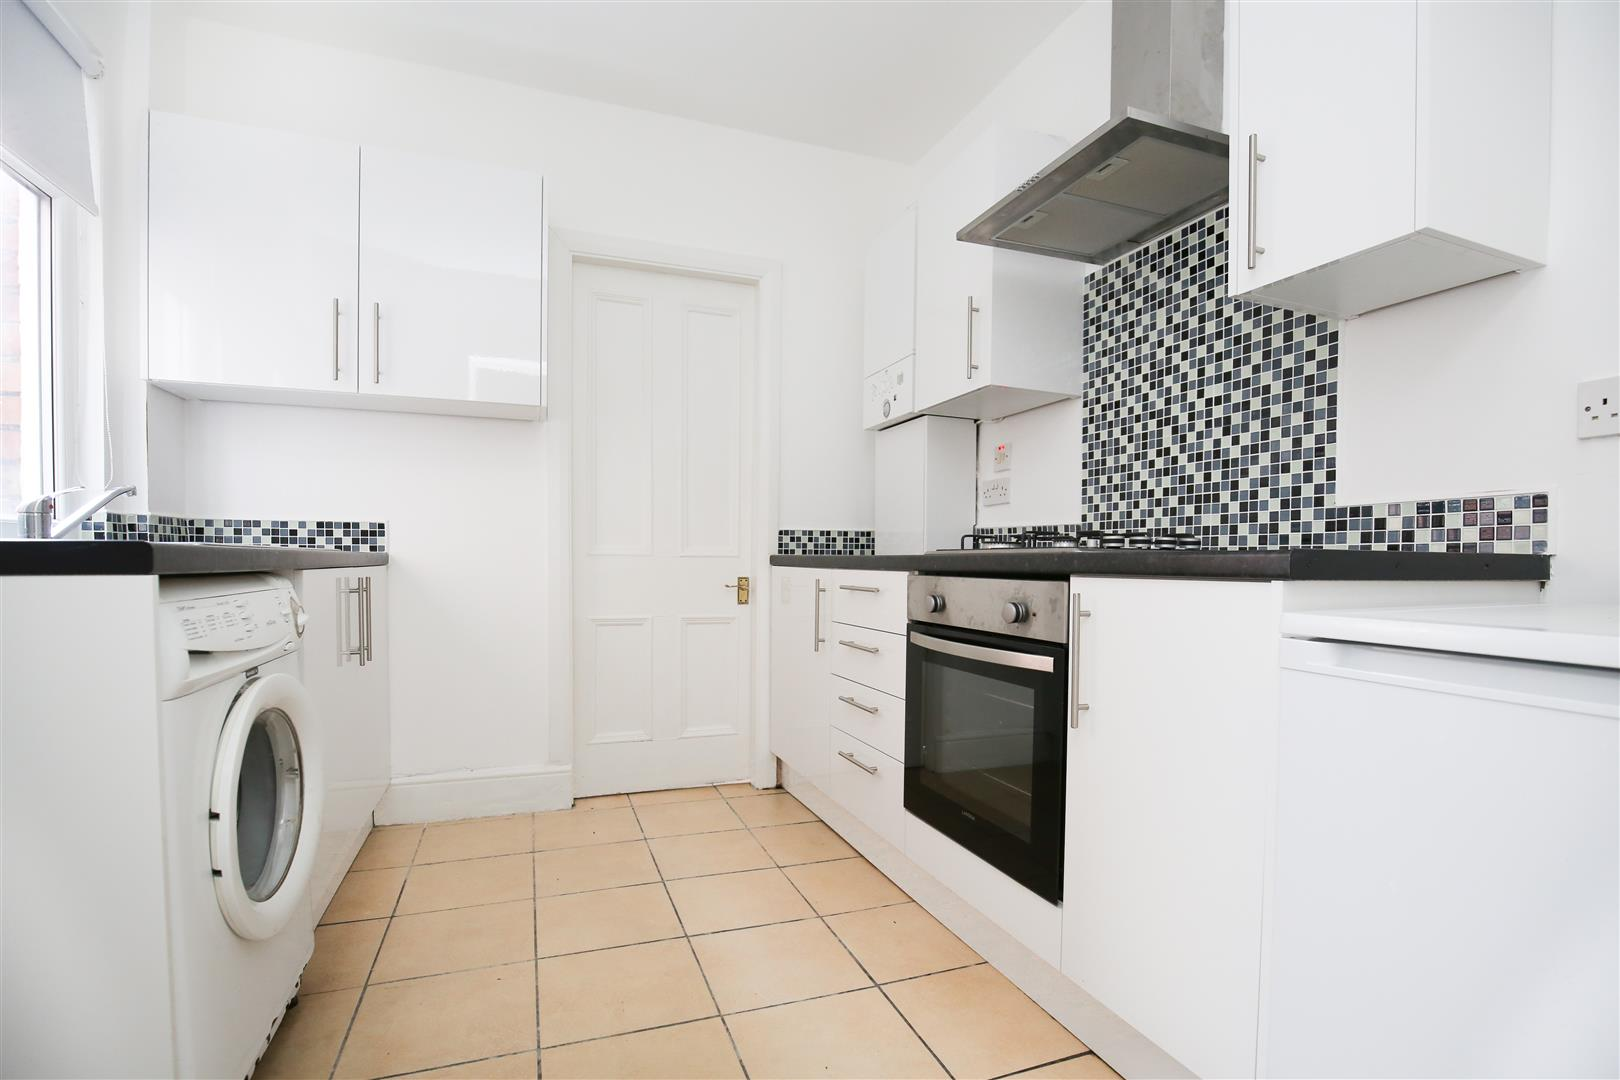 2 bed flat to rent in Cartington Terrace, Newcastle Upon Tyne, NE6